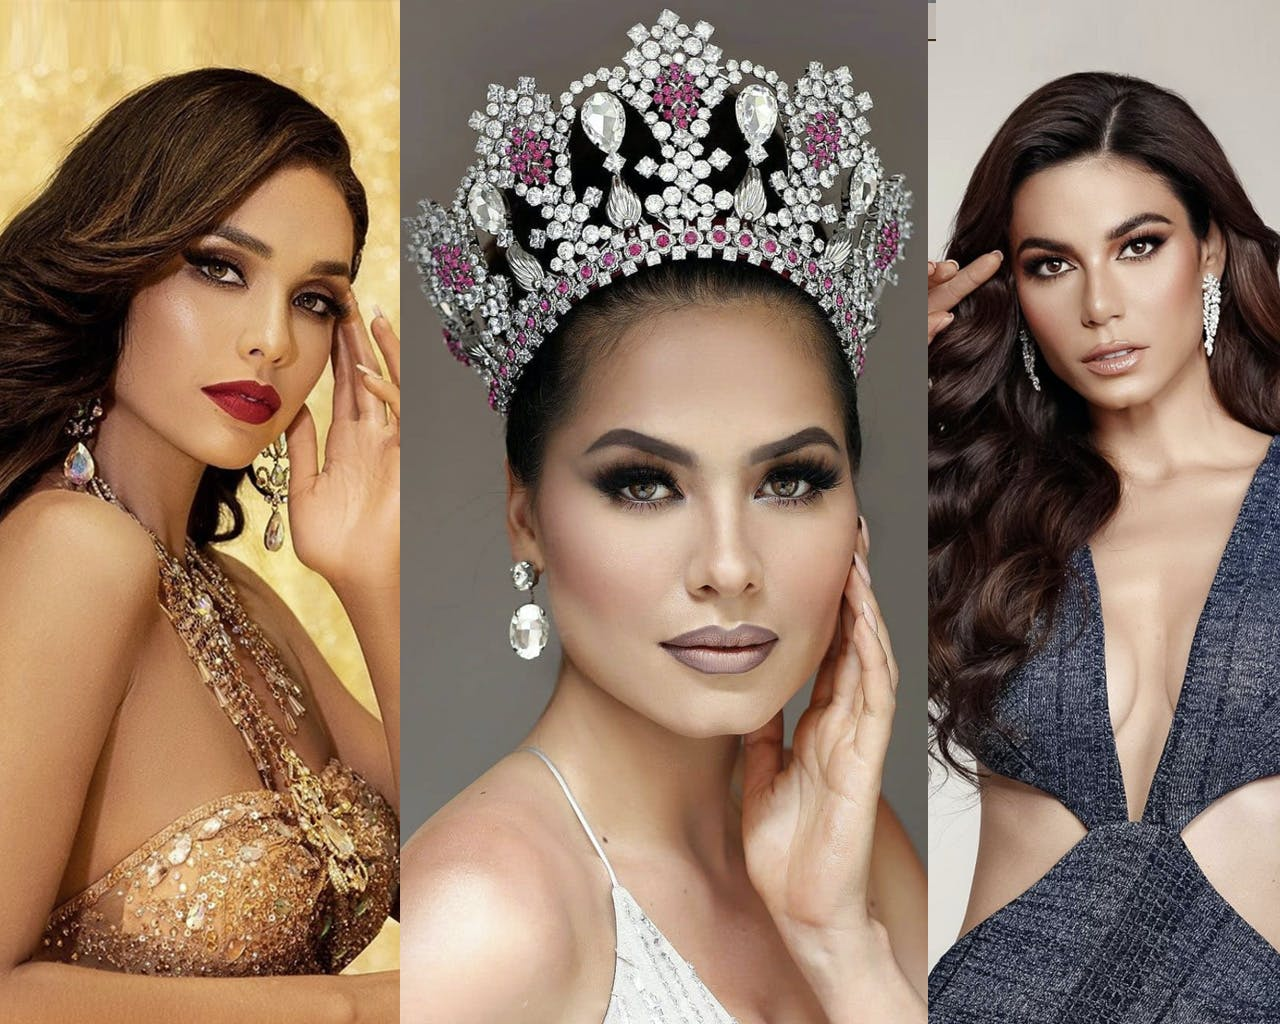 Mexico Takes Home The Miss Universe Crown, COVID-Related Questions Dominate Q&A